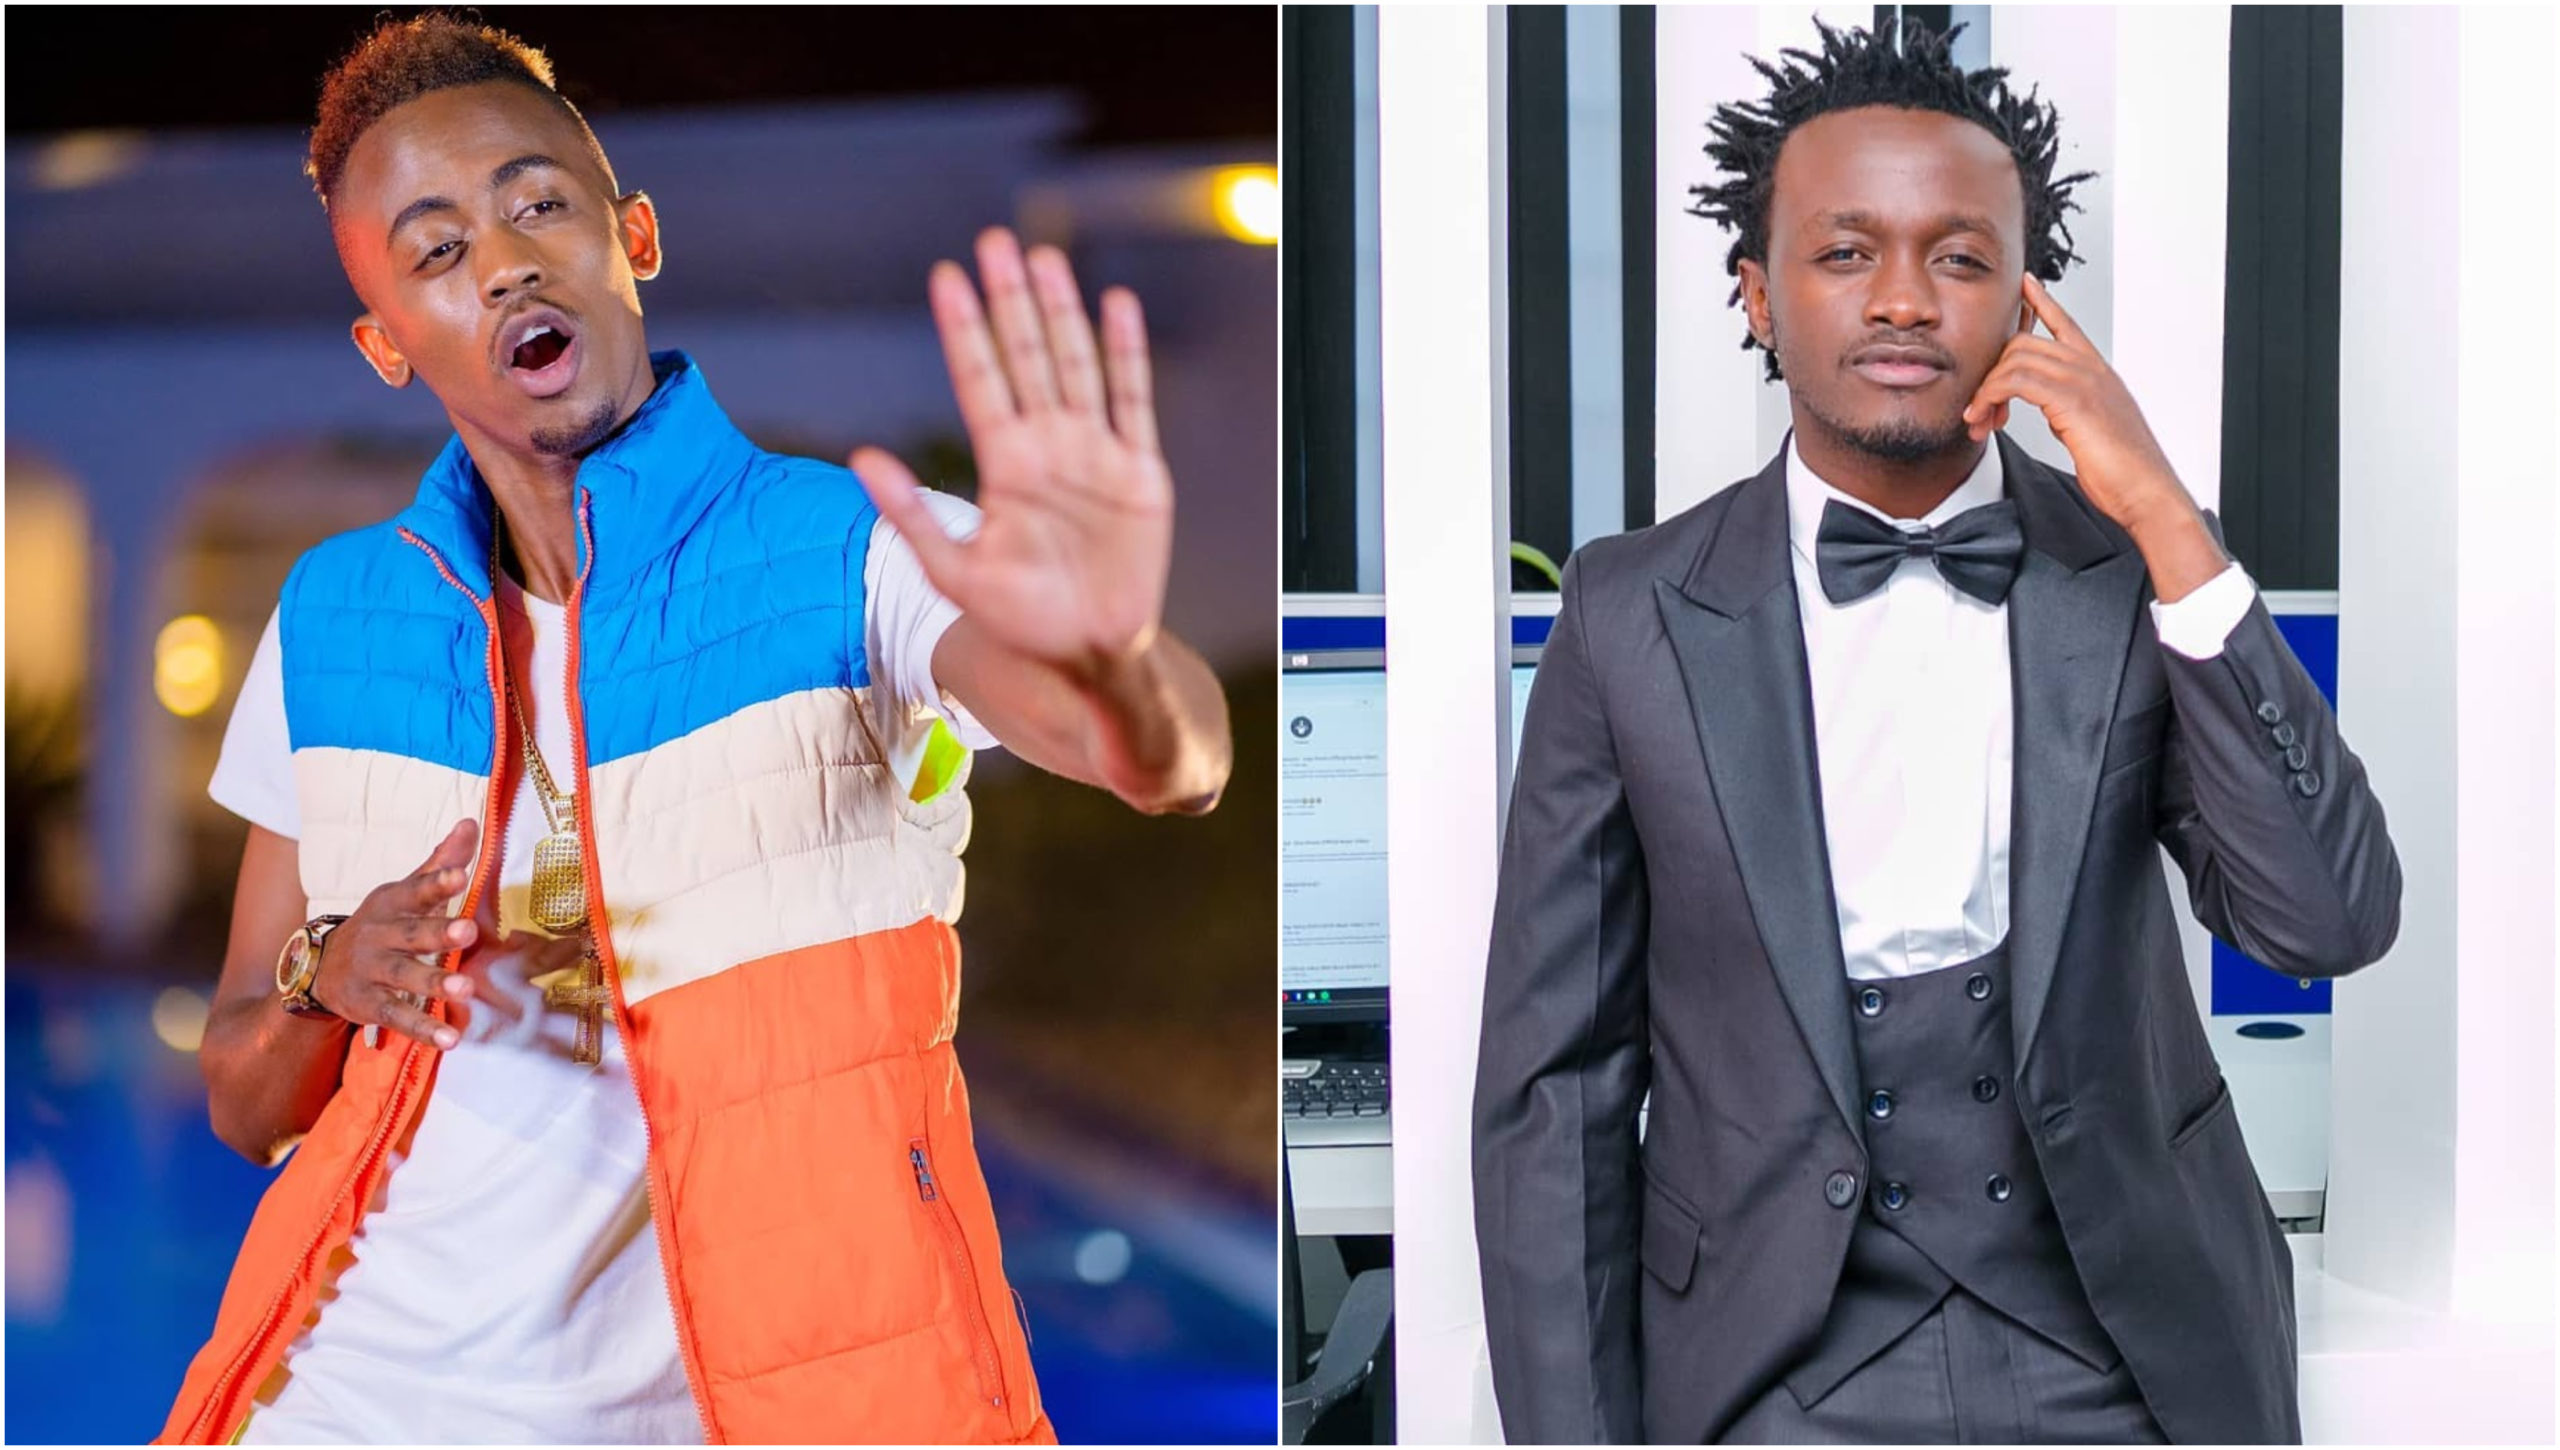 Brotherly love? Bahati and Weezdom's relationship questioned after their intimate chats surface